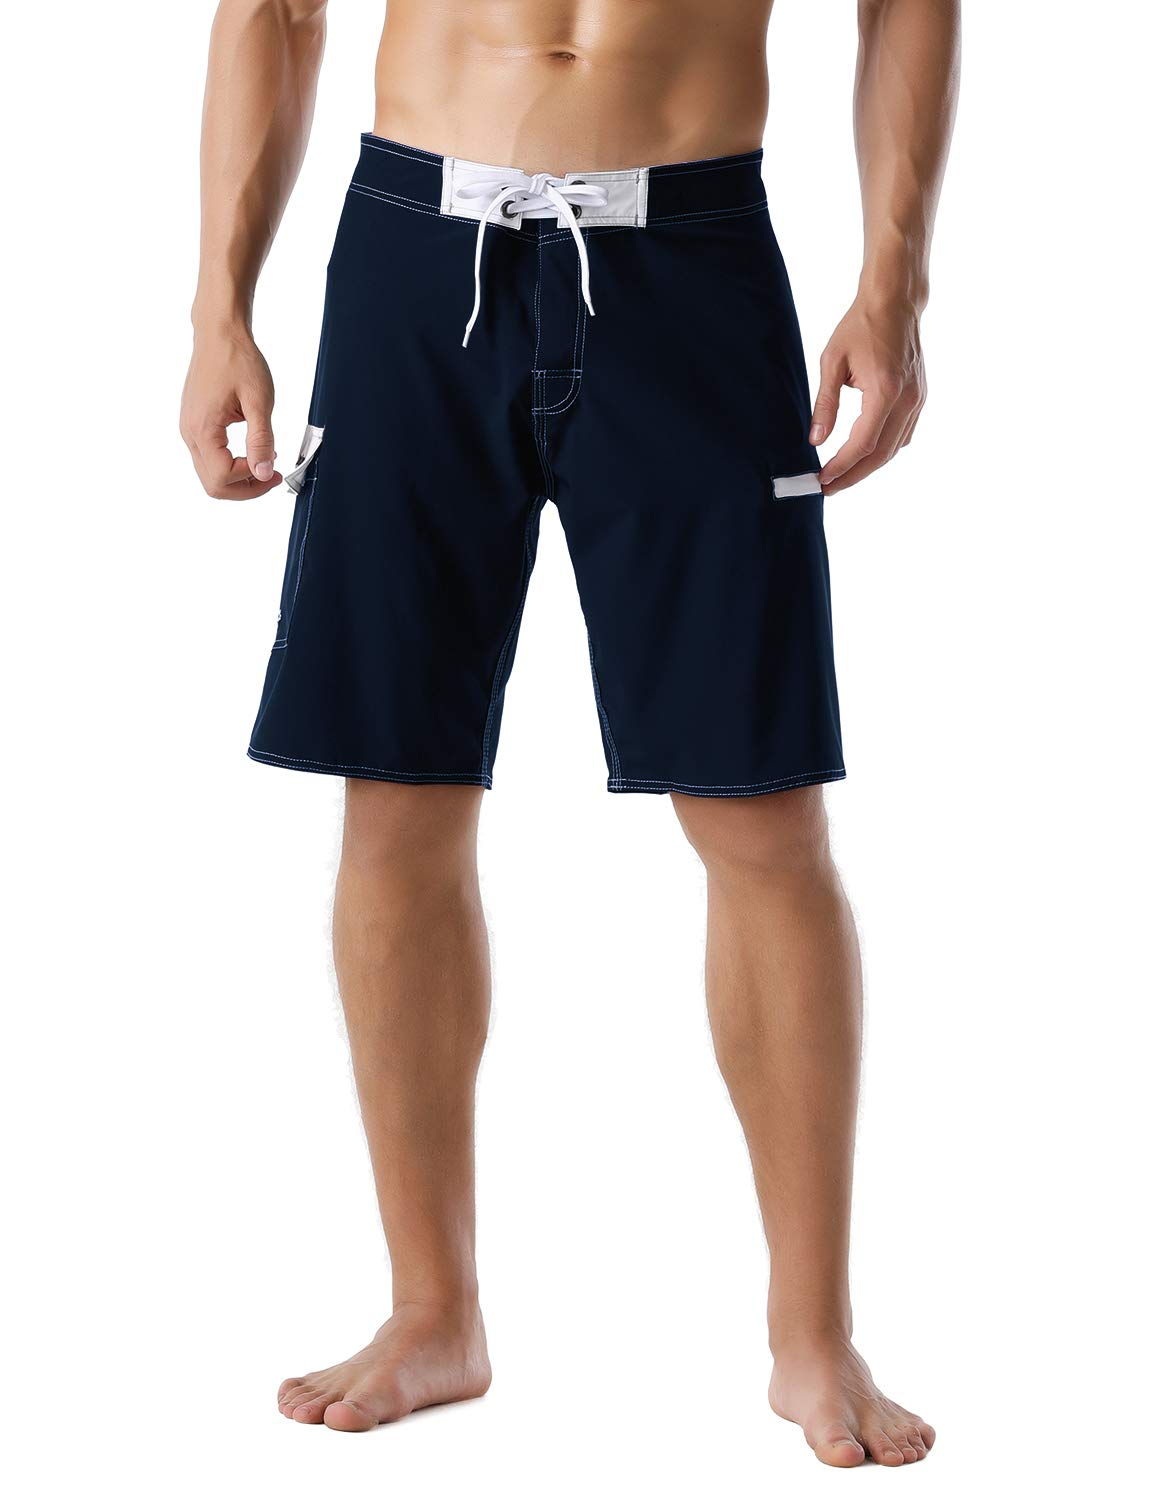 Nonwe Men's Swimming Shorts Quick Dry Summer Vacation Zipper Pocket Bathing Suit Navy 34 by Nonwe